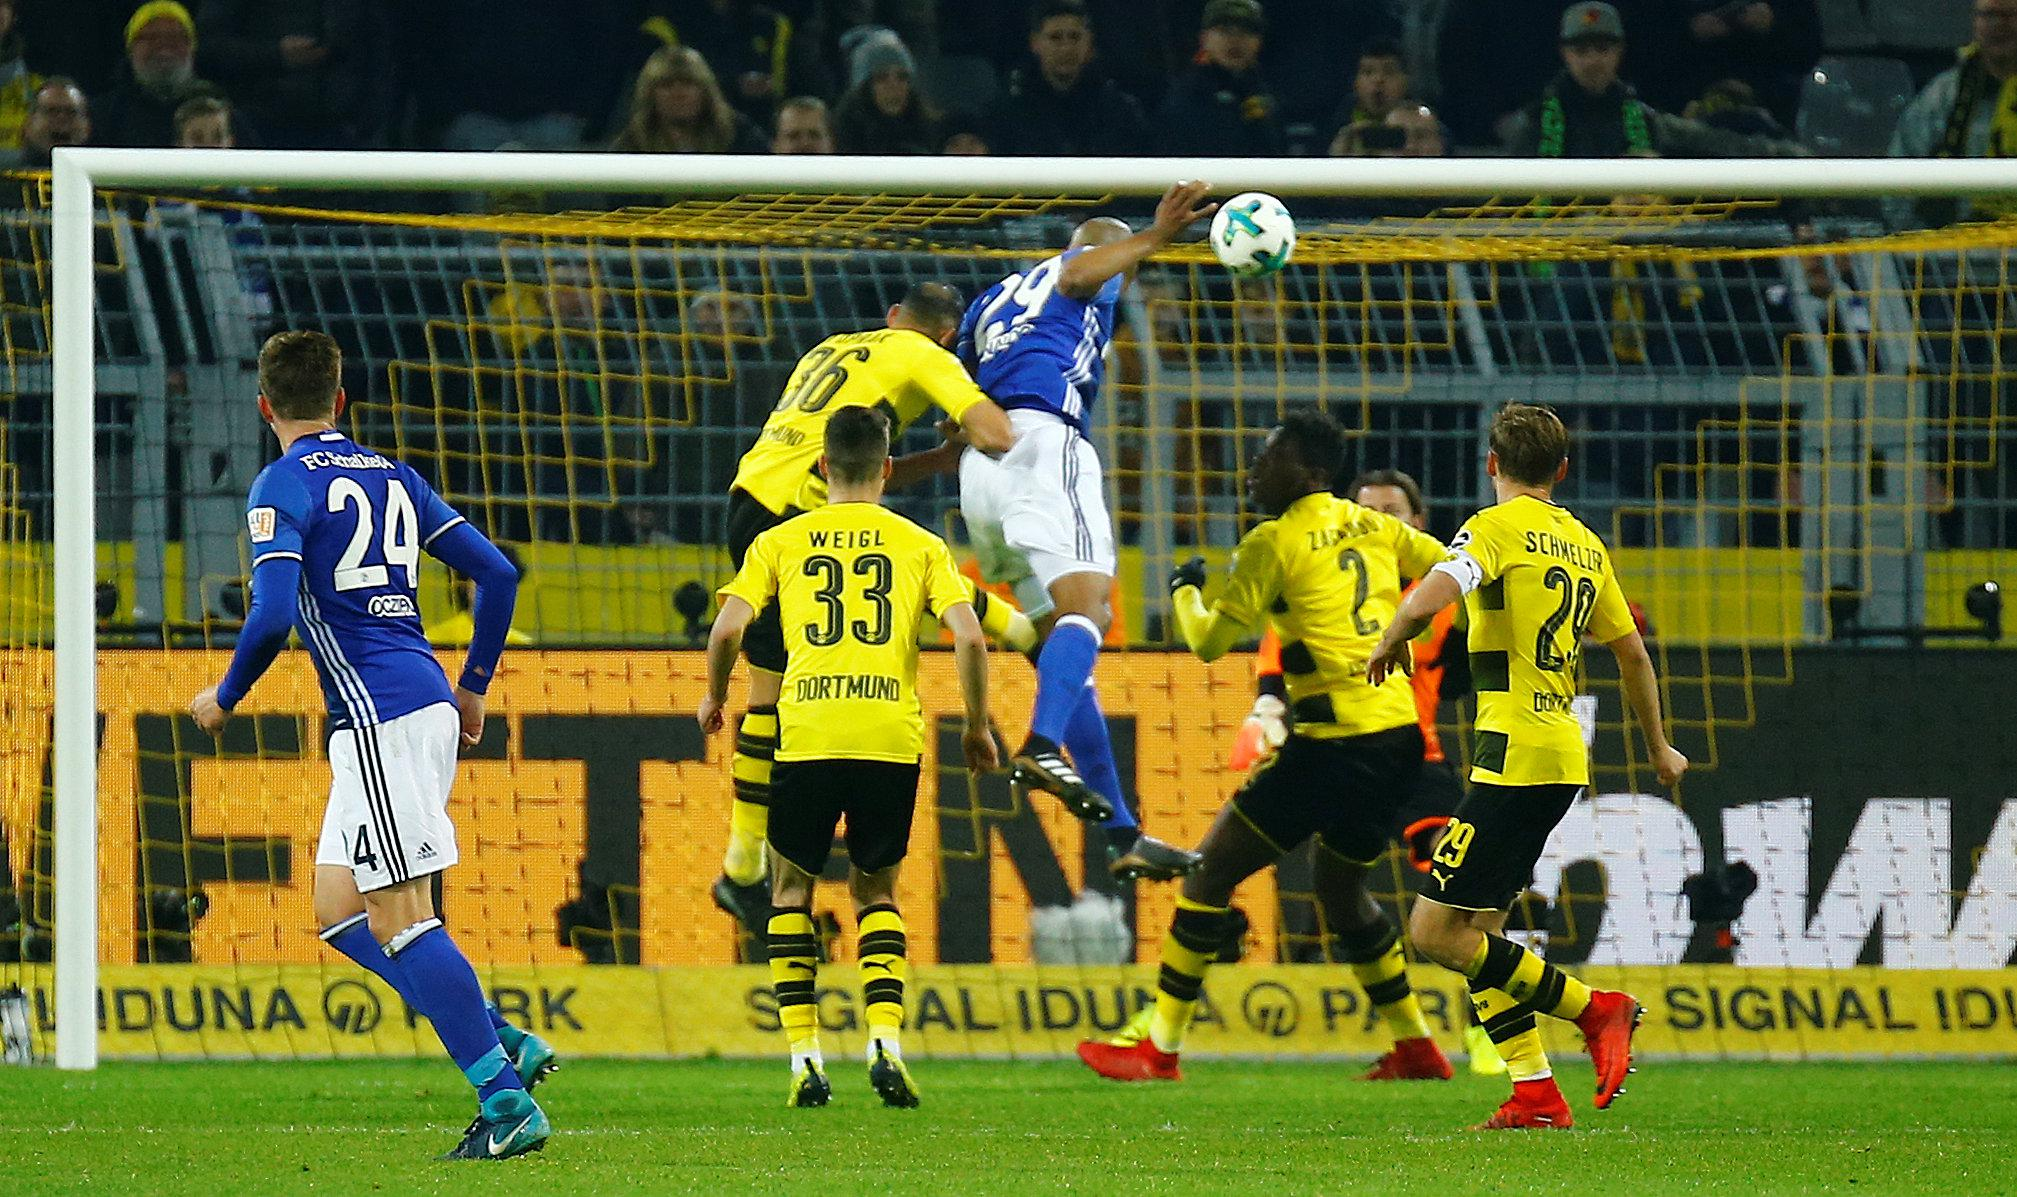 Naldo rises to secure an improbable 4-4 draw against Borussia Dortmund